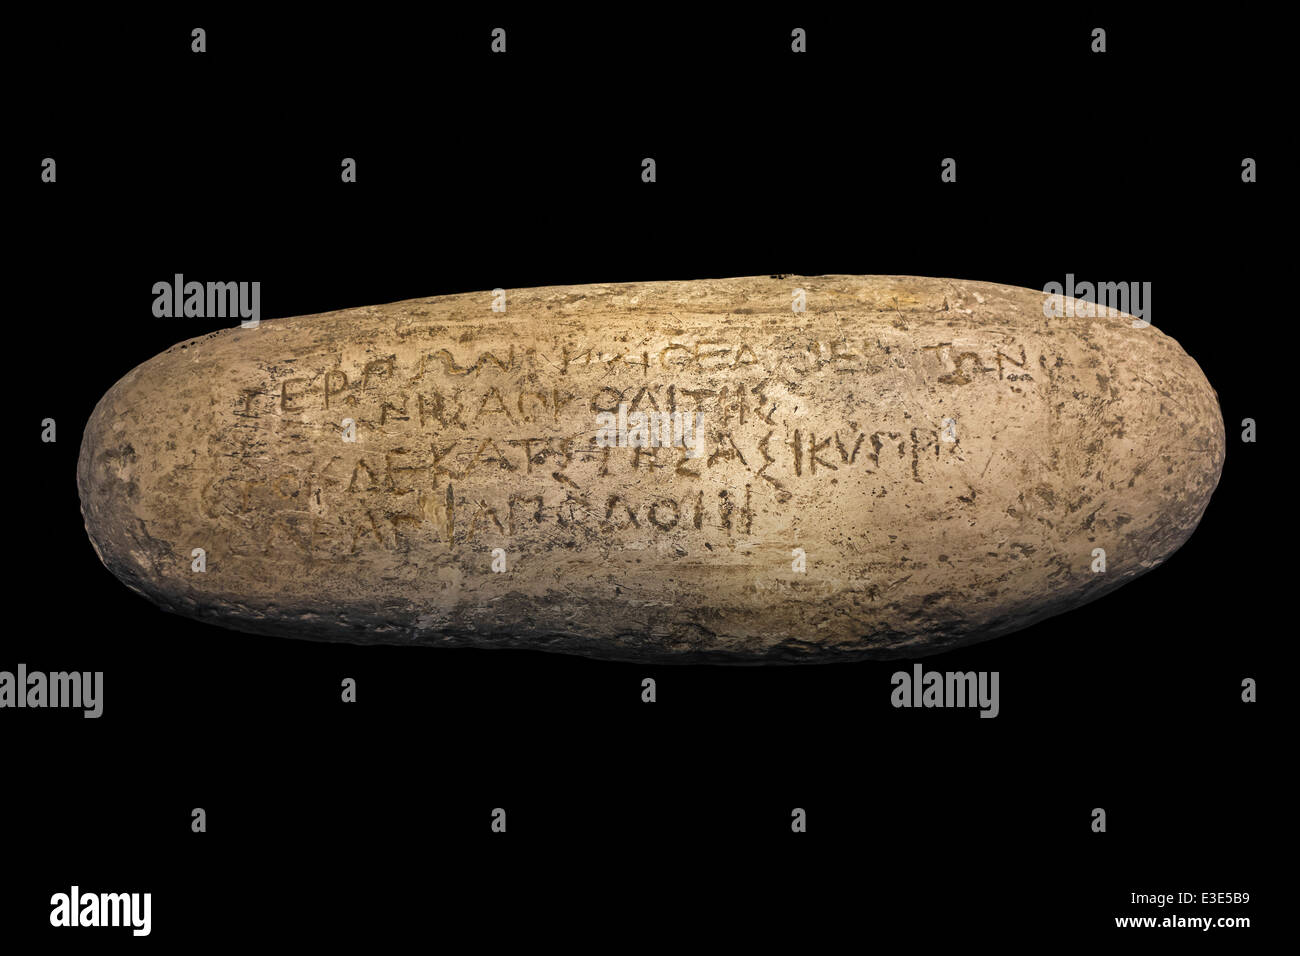 The Stone of Terpon / Pebble of Antibes / Galet d'Antibes with carved inscription in Ionic Greek, dated to between - Stock Image